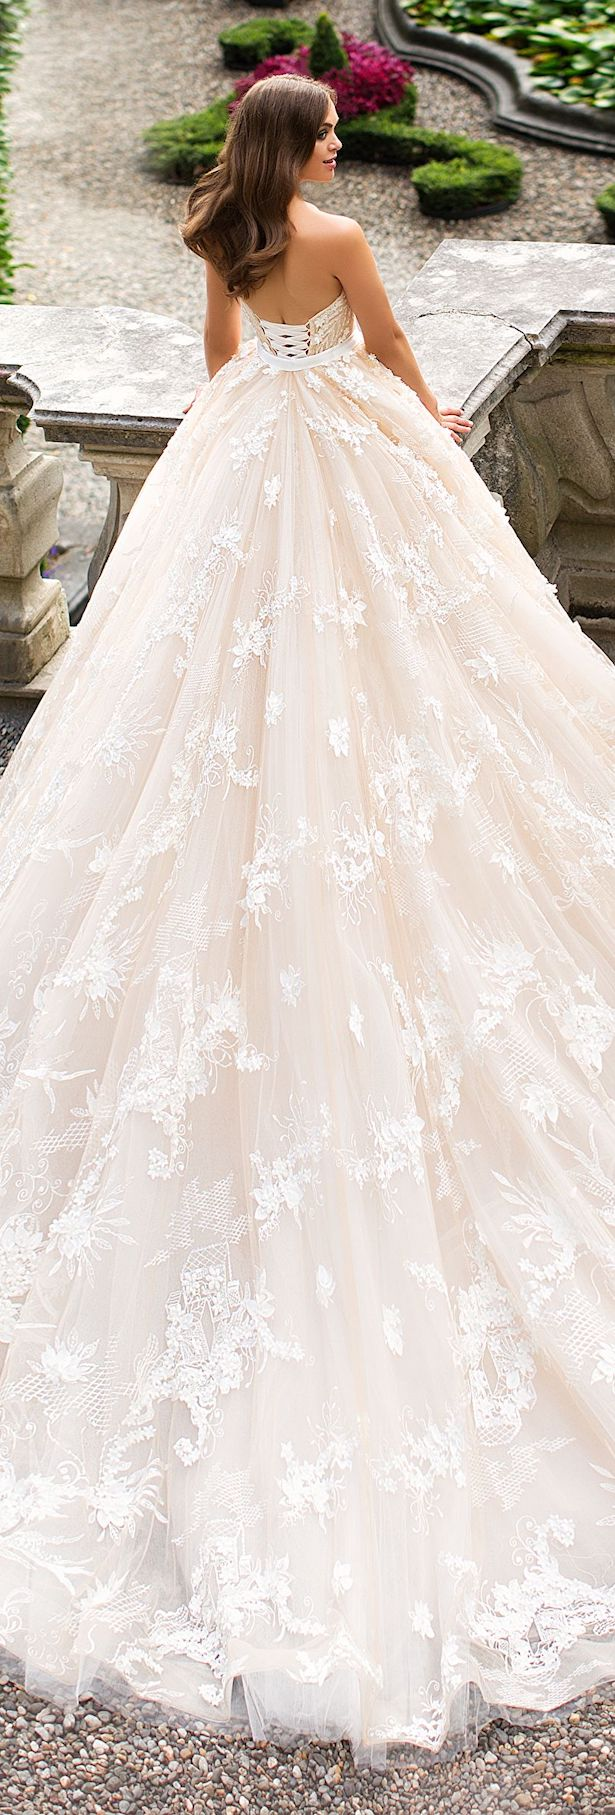 Wedding Dress by Milla Nova White Desire 2017 Bridal Collection - Savana